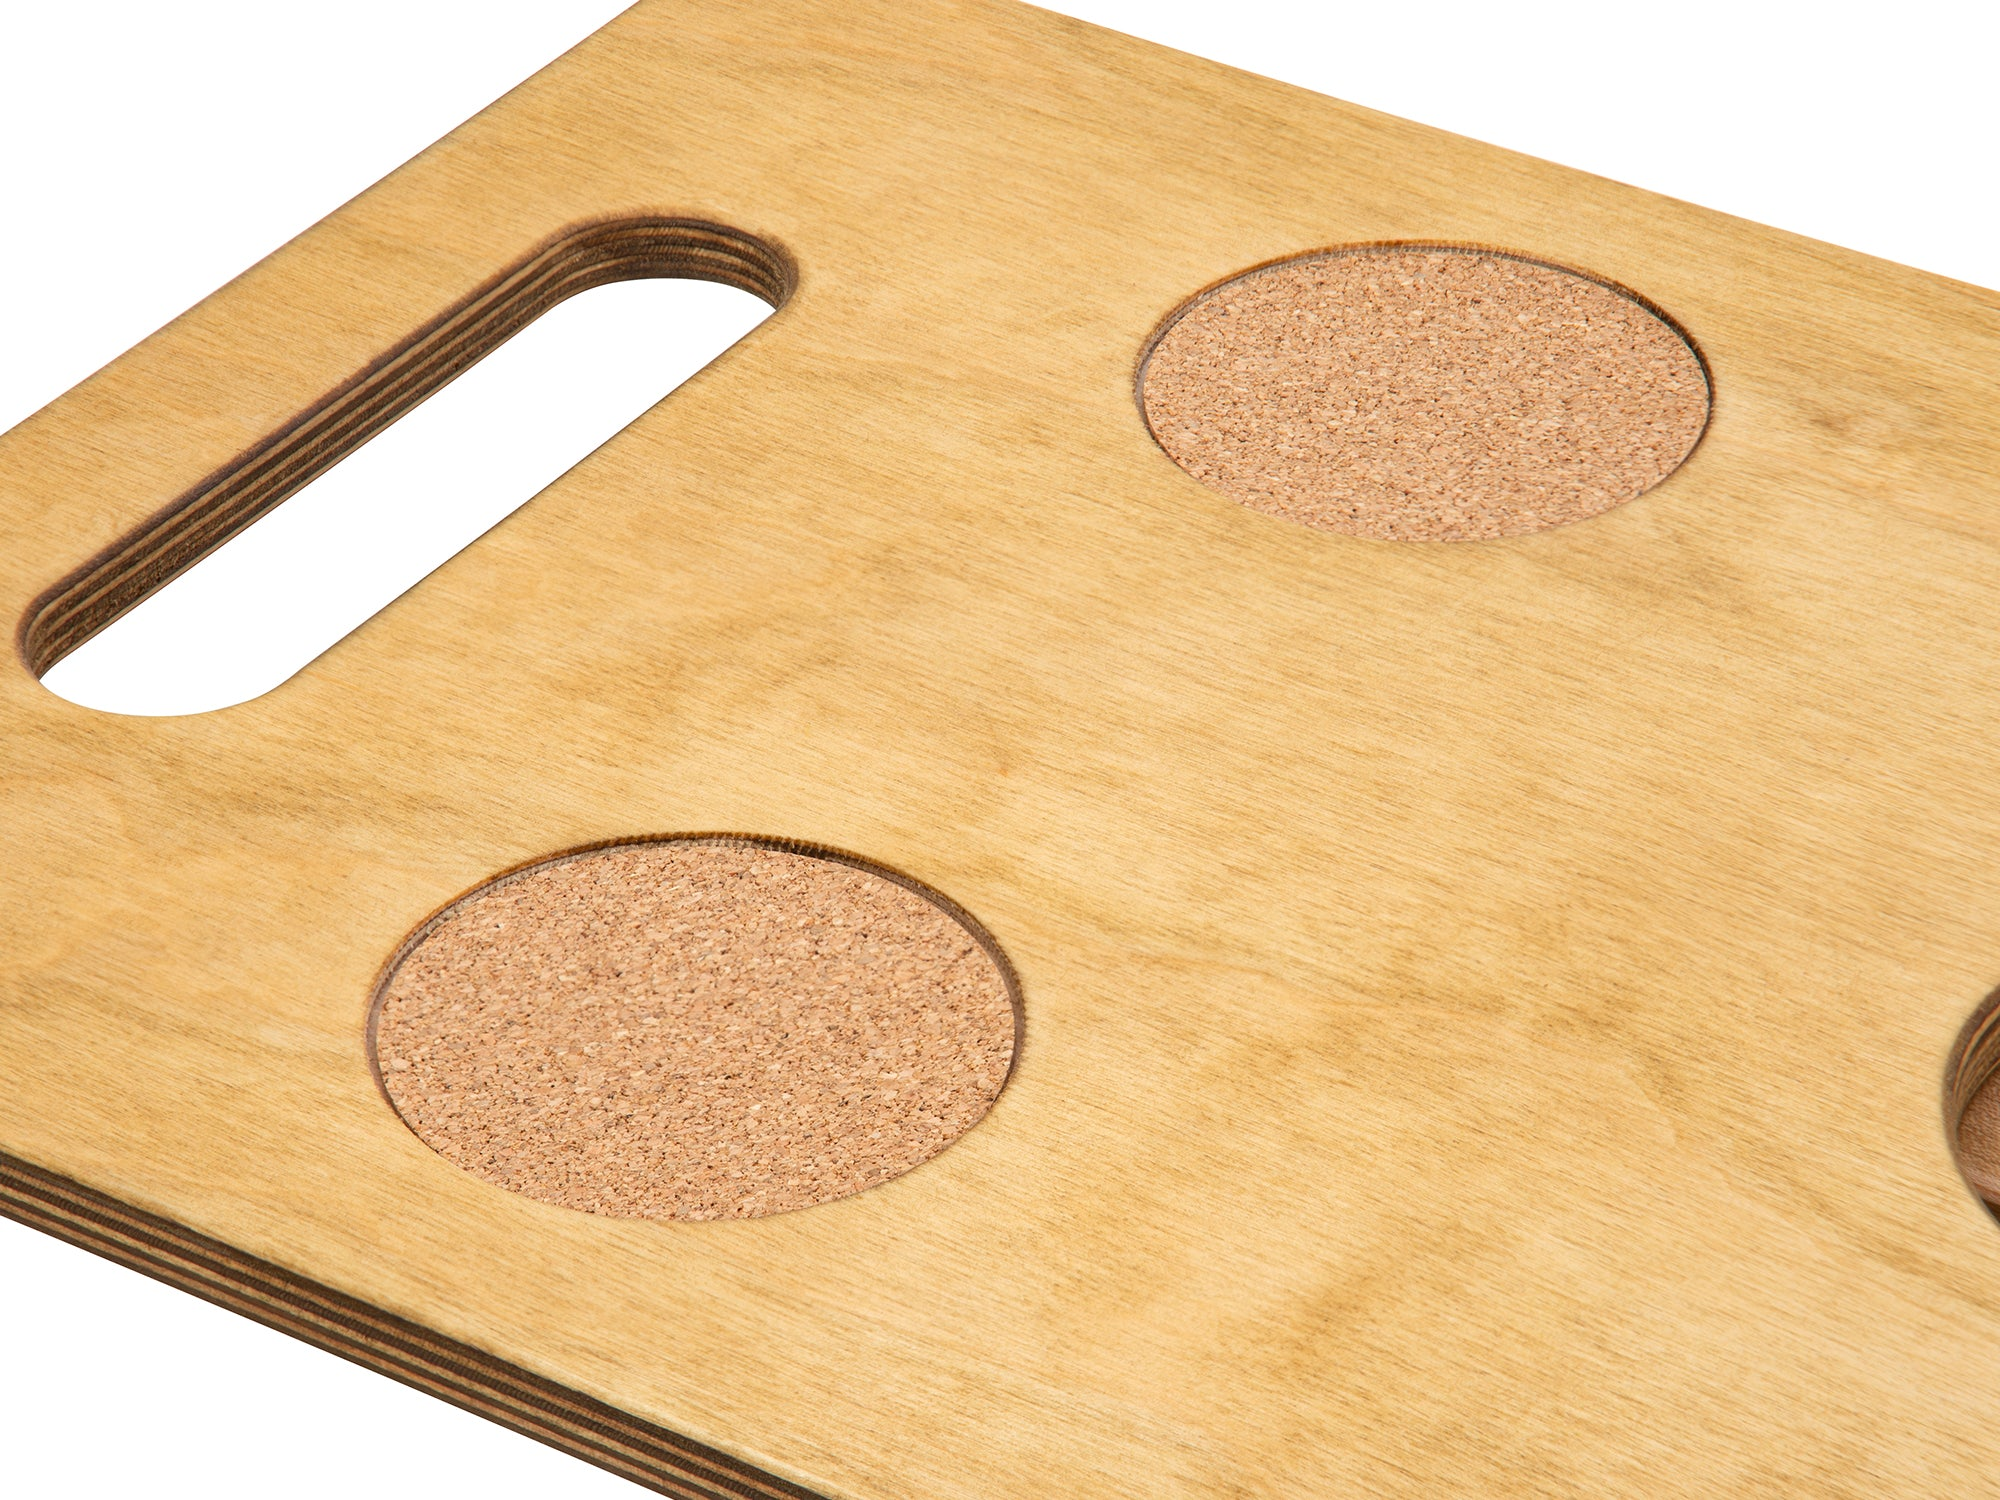 Non slip cork pads Goulburn portable beach table top in naturally sunkissed color